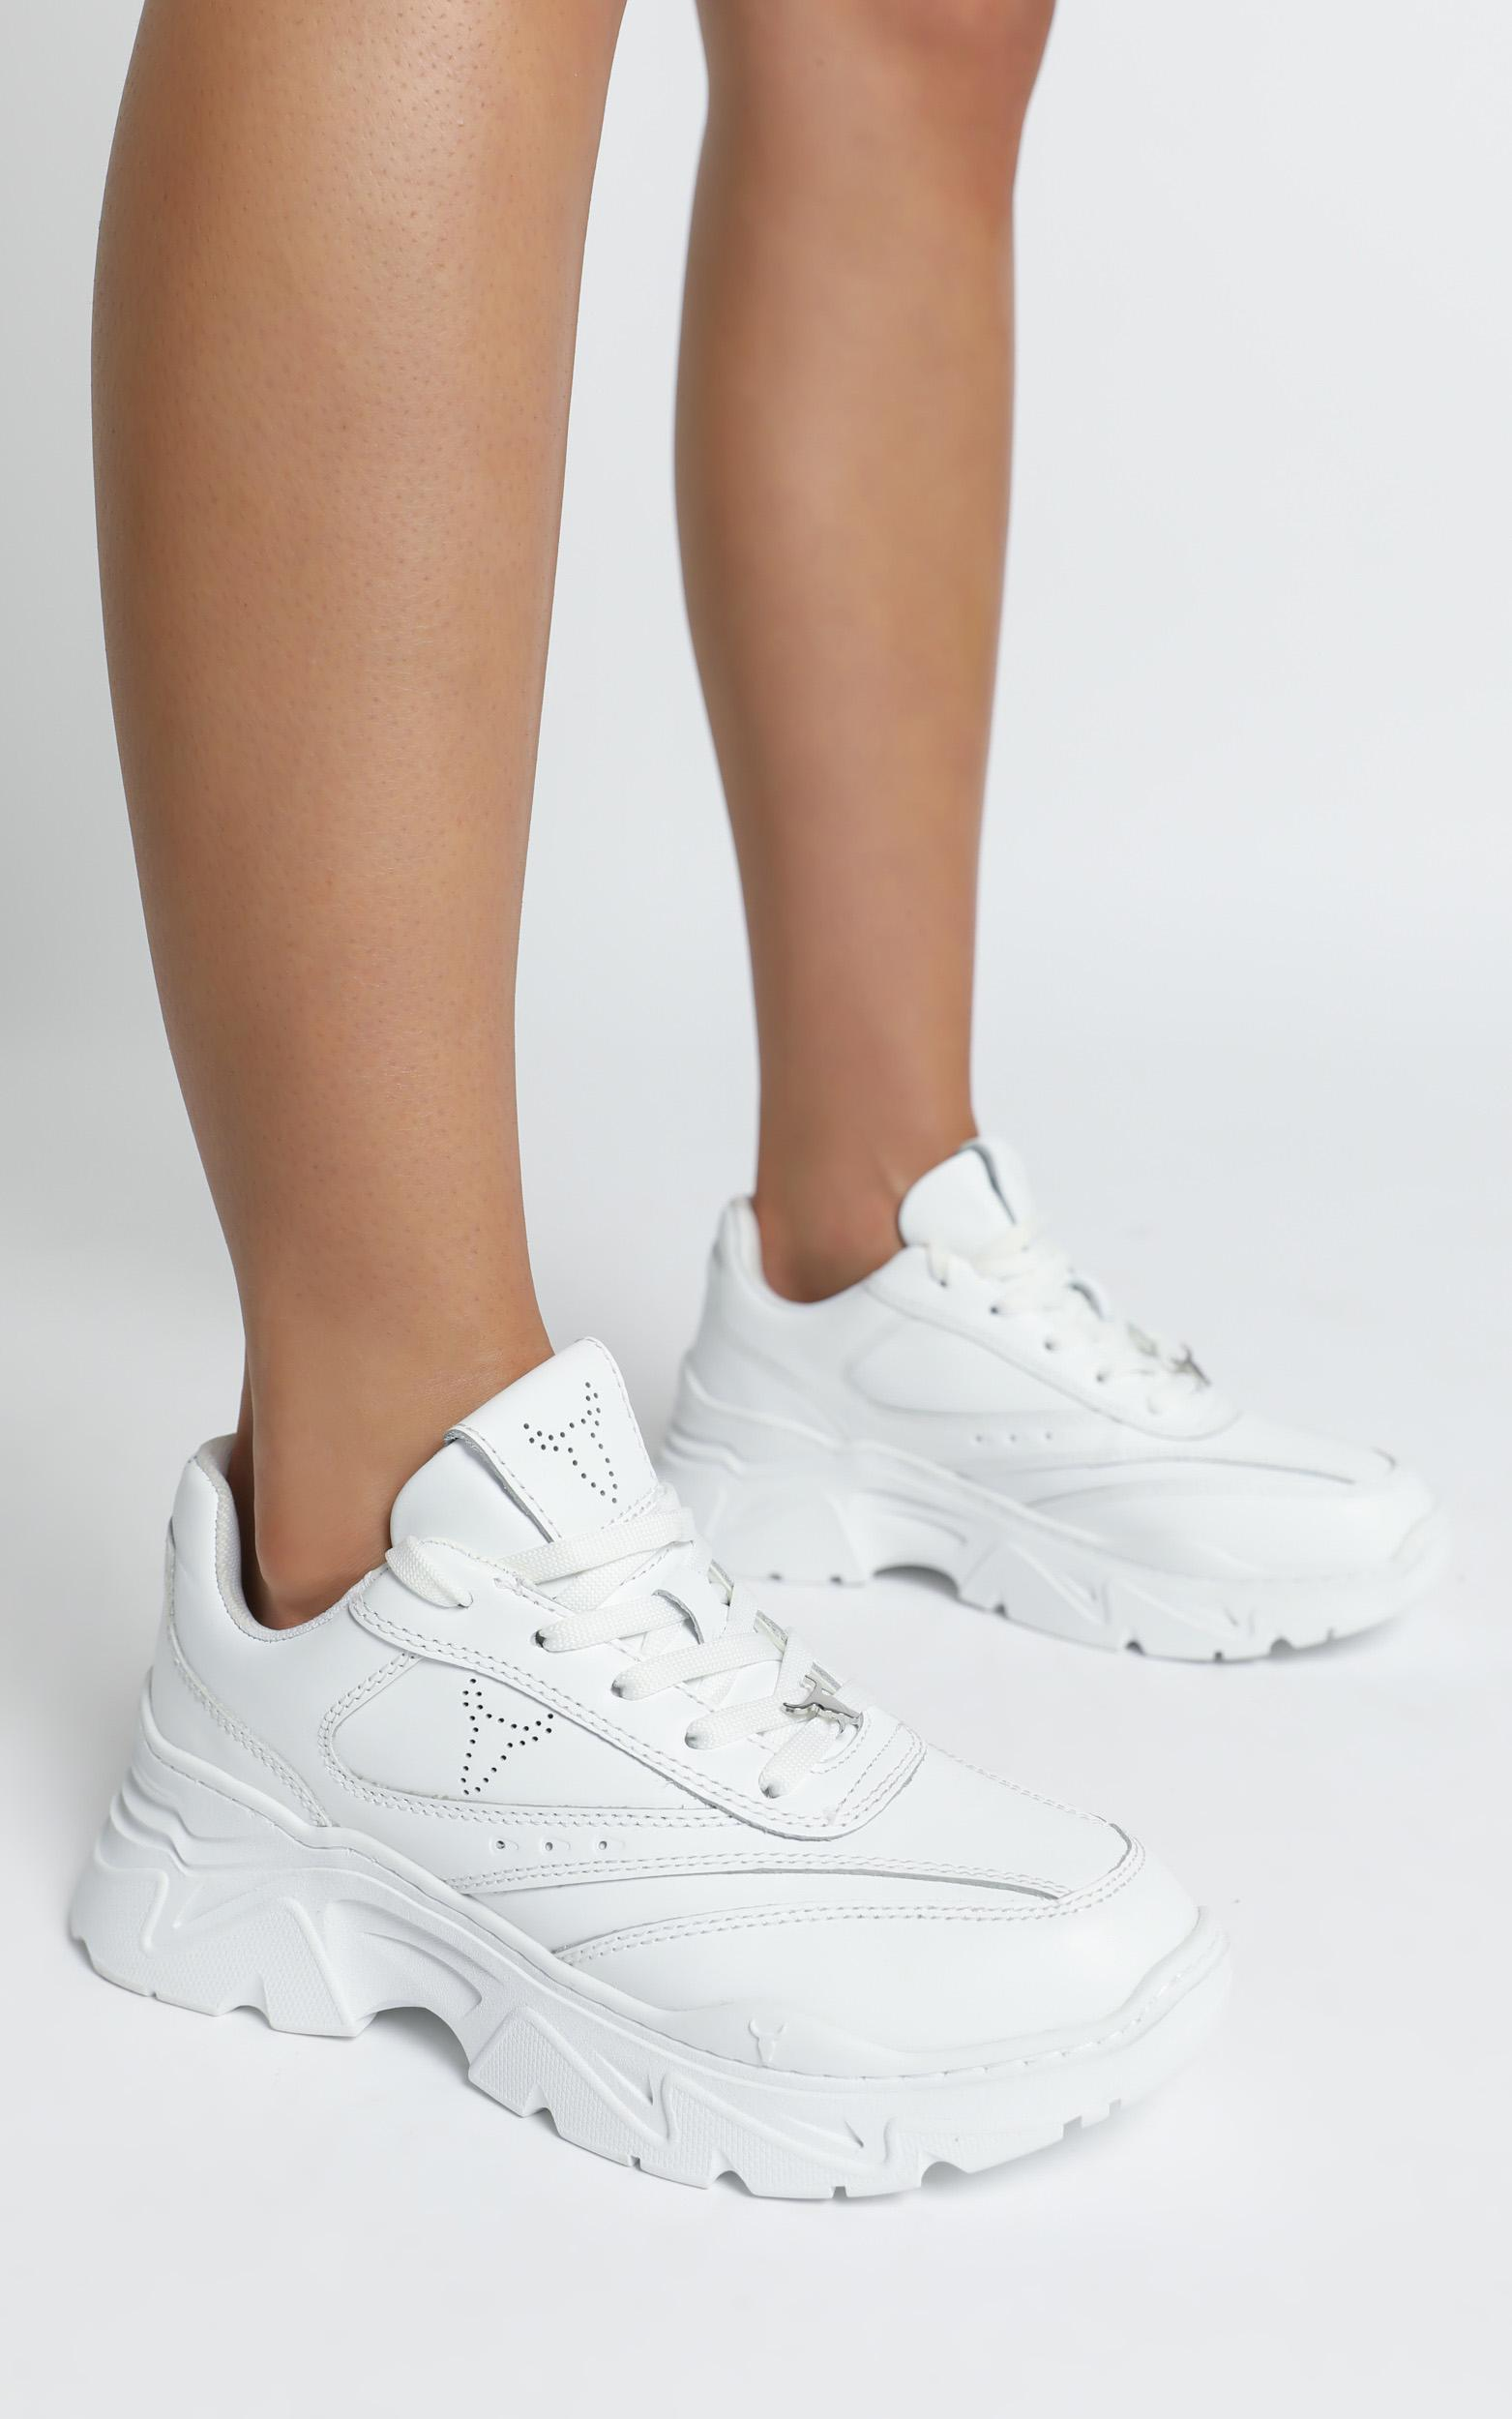 Windsor Smith - Craze Sneakers in White Leather - 6, WHT2, hi-res image number null